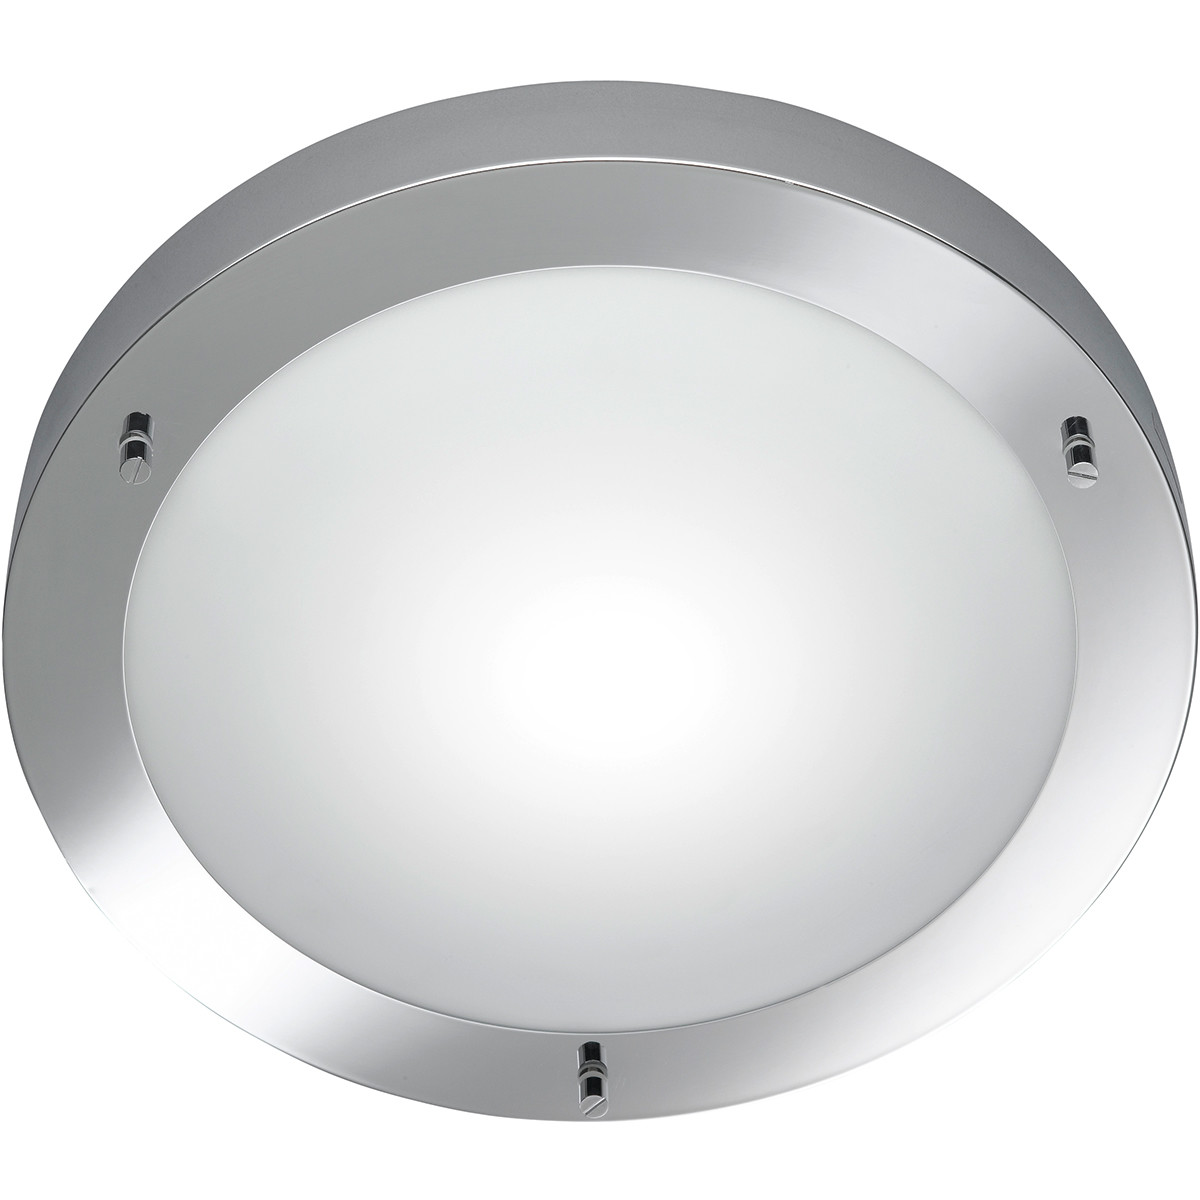 LED Plafondlamp - Trion Condi - Opbouw Rond - Spatwaterdicht IP44 - E27 Fitting - Glans Chroom Alumi